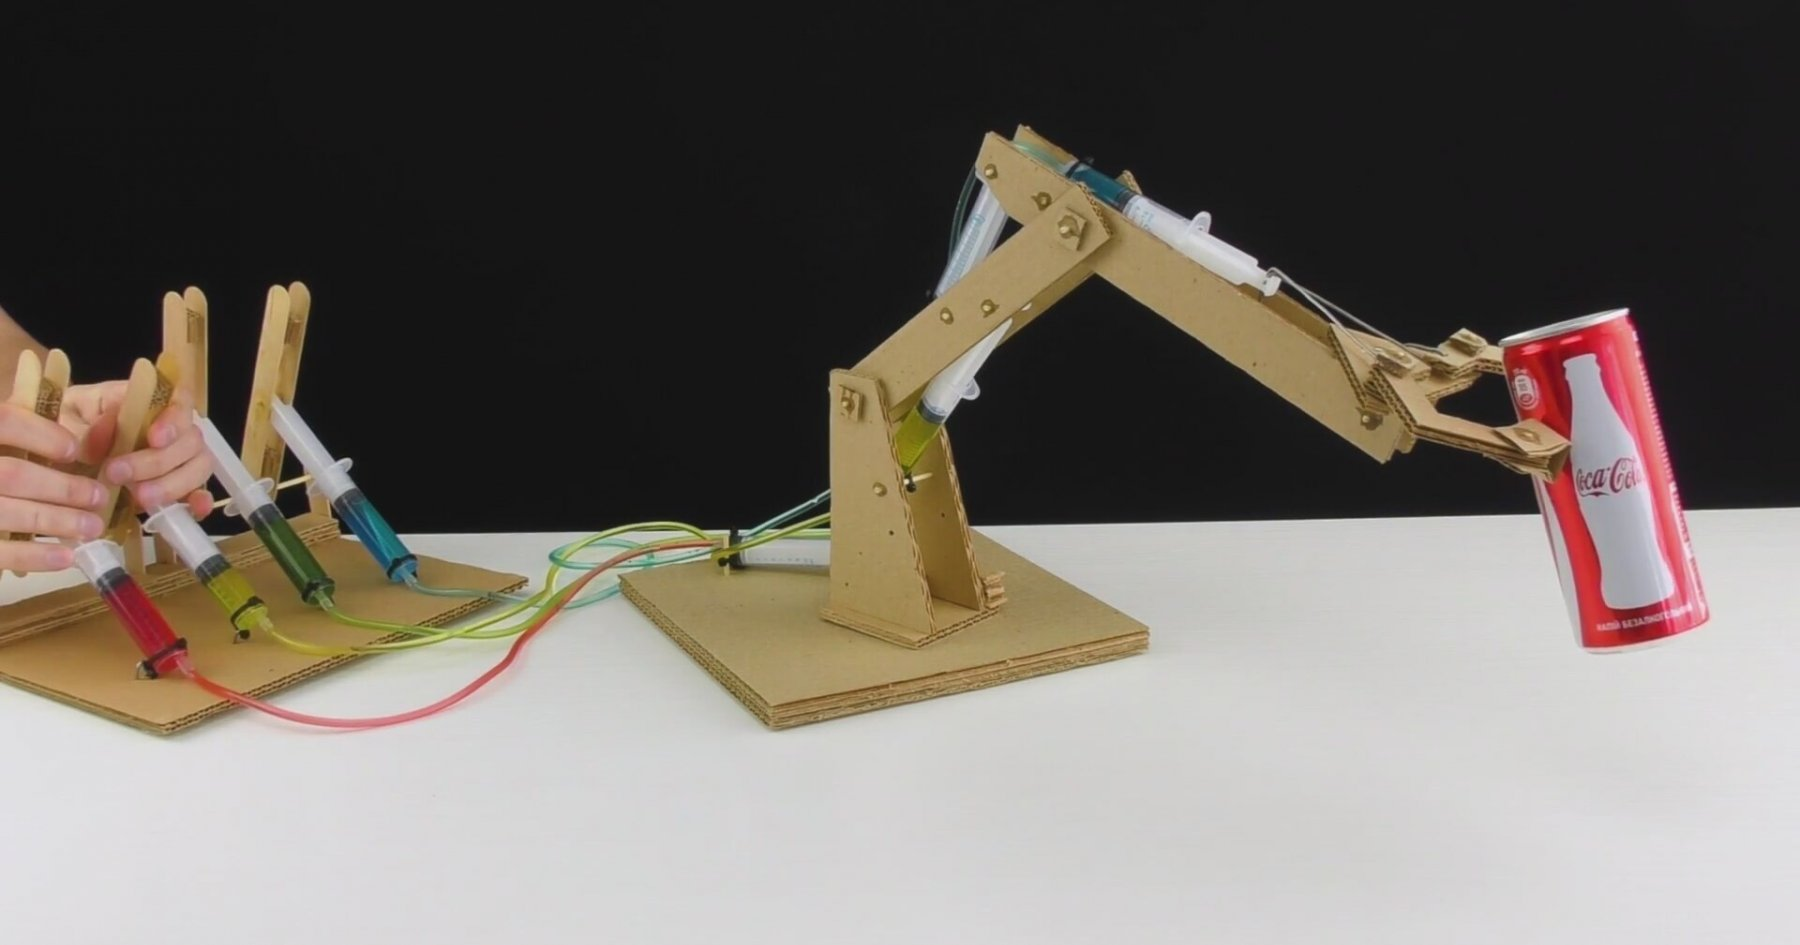 Hydraulic Powered Arm : How to make hydraulic powered robotic arm from cardboard